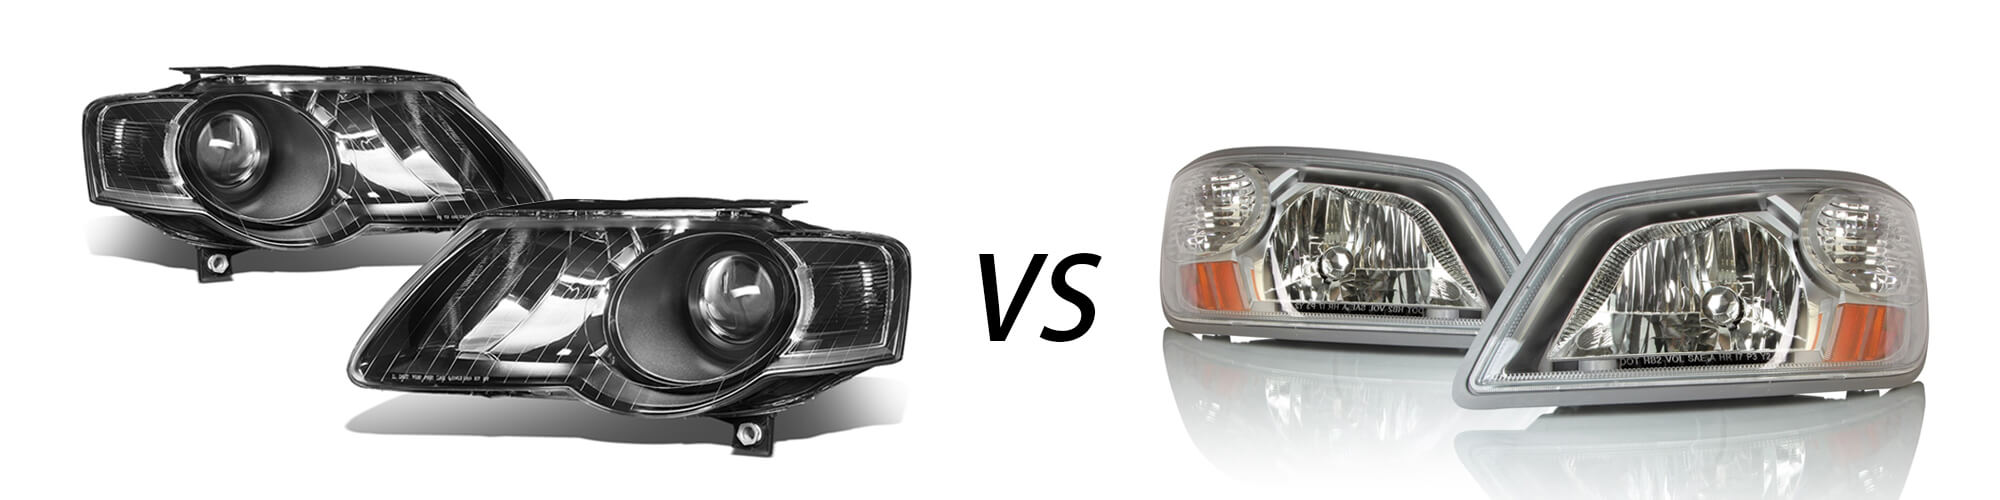 projector vs reflector housing